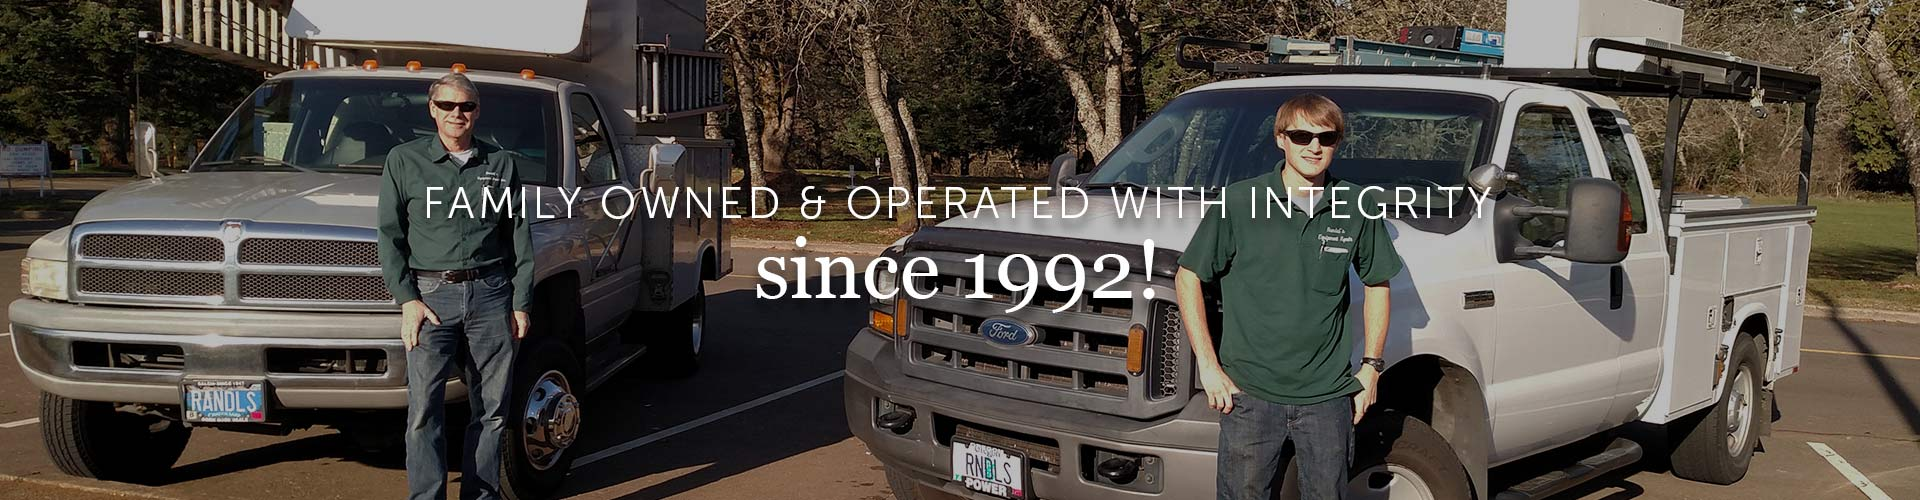 Family owned & operated with integrity since 1992!